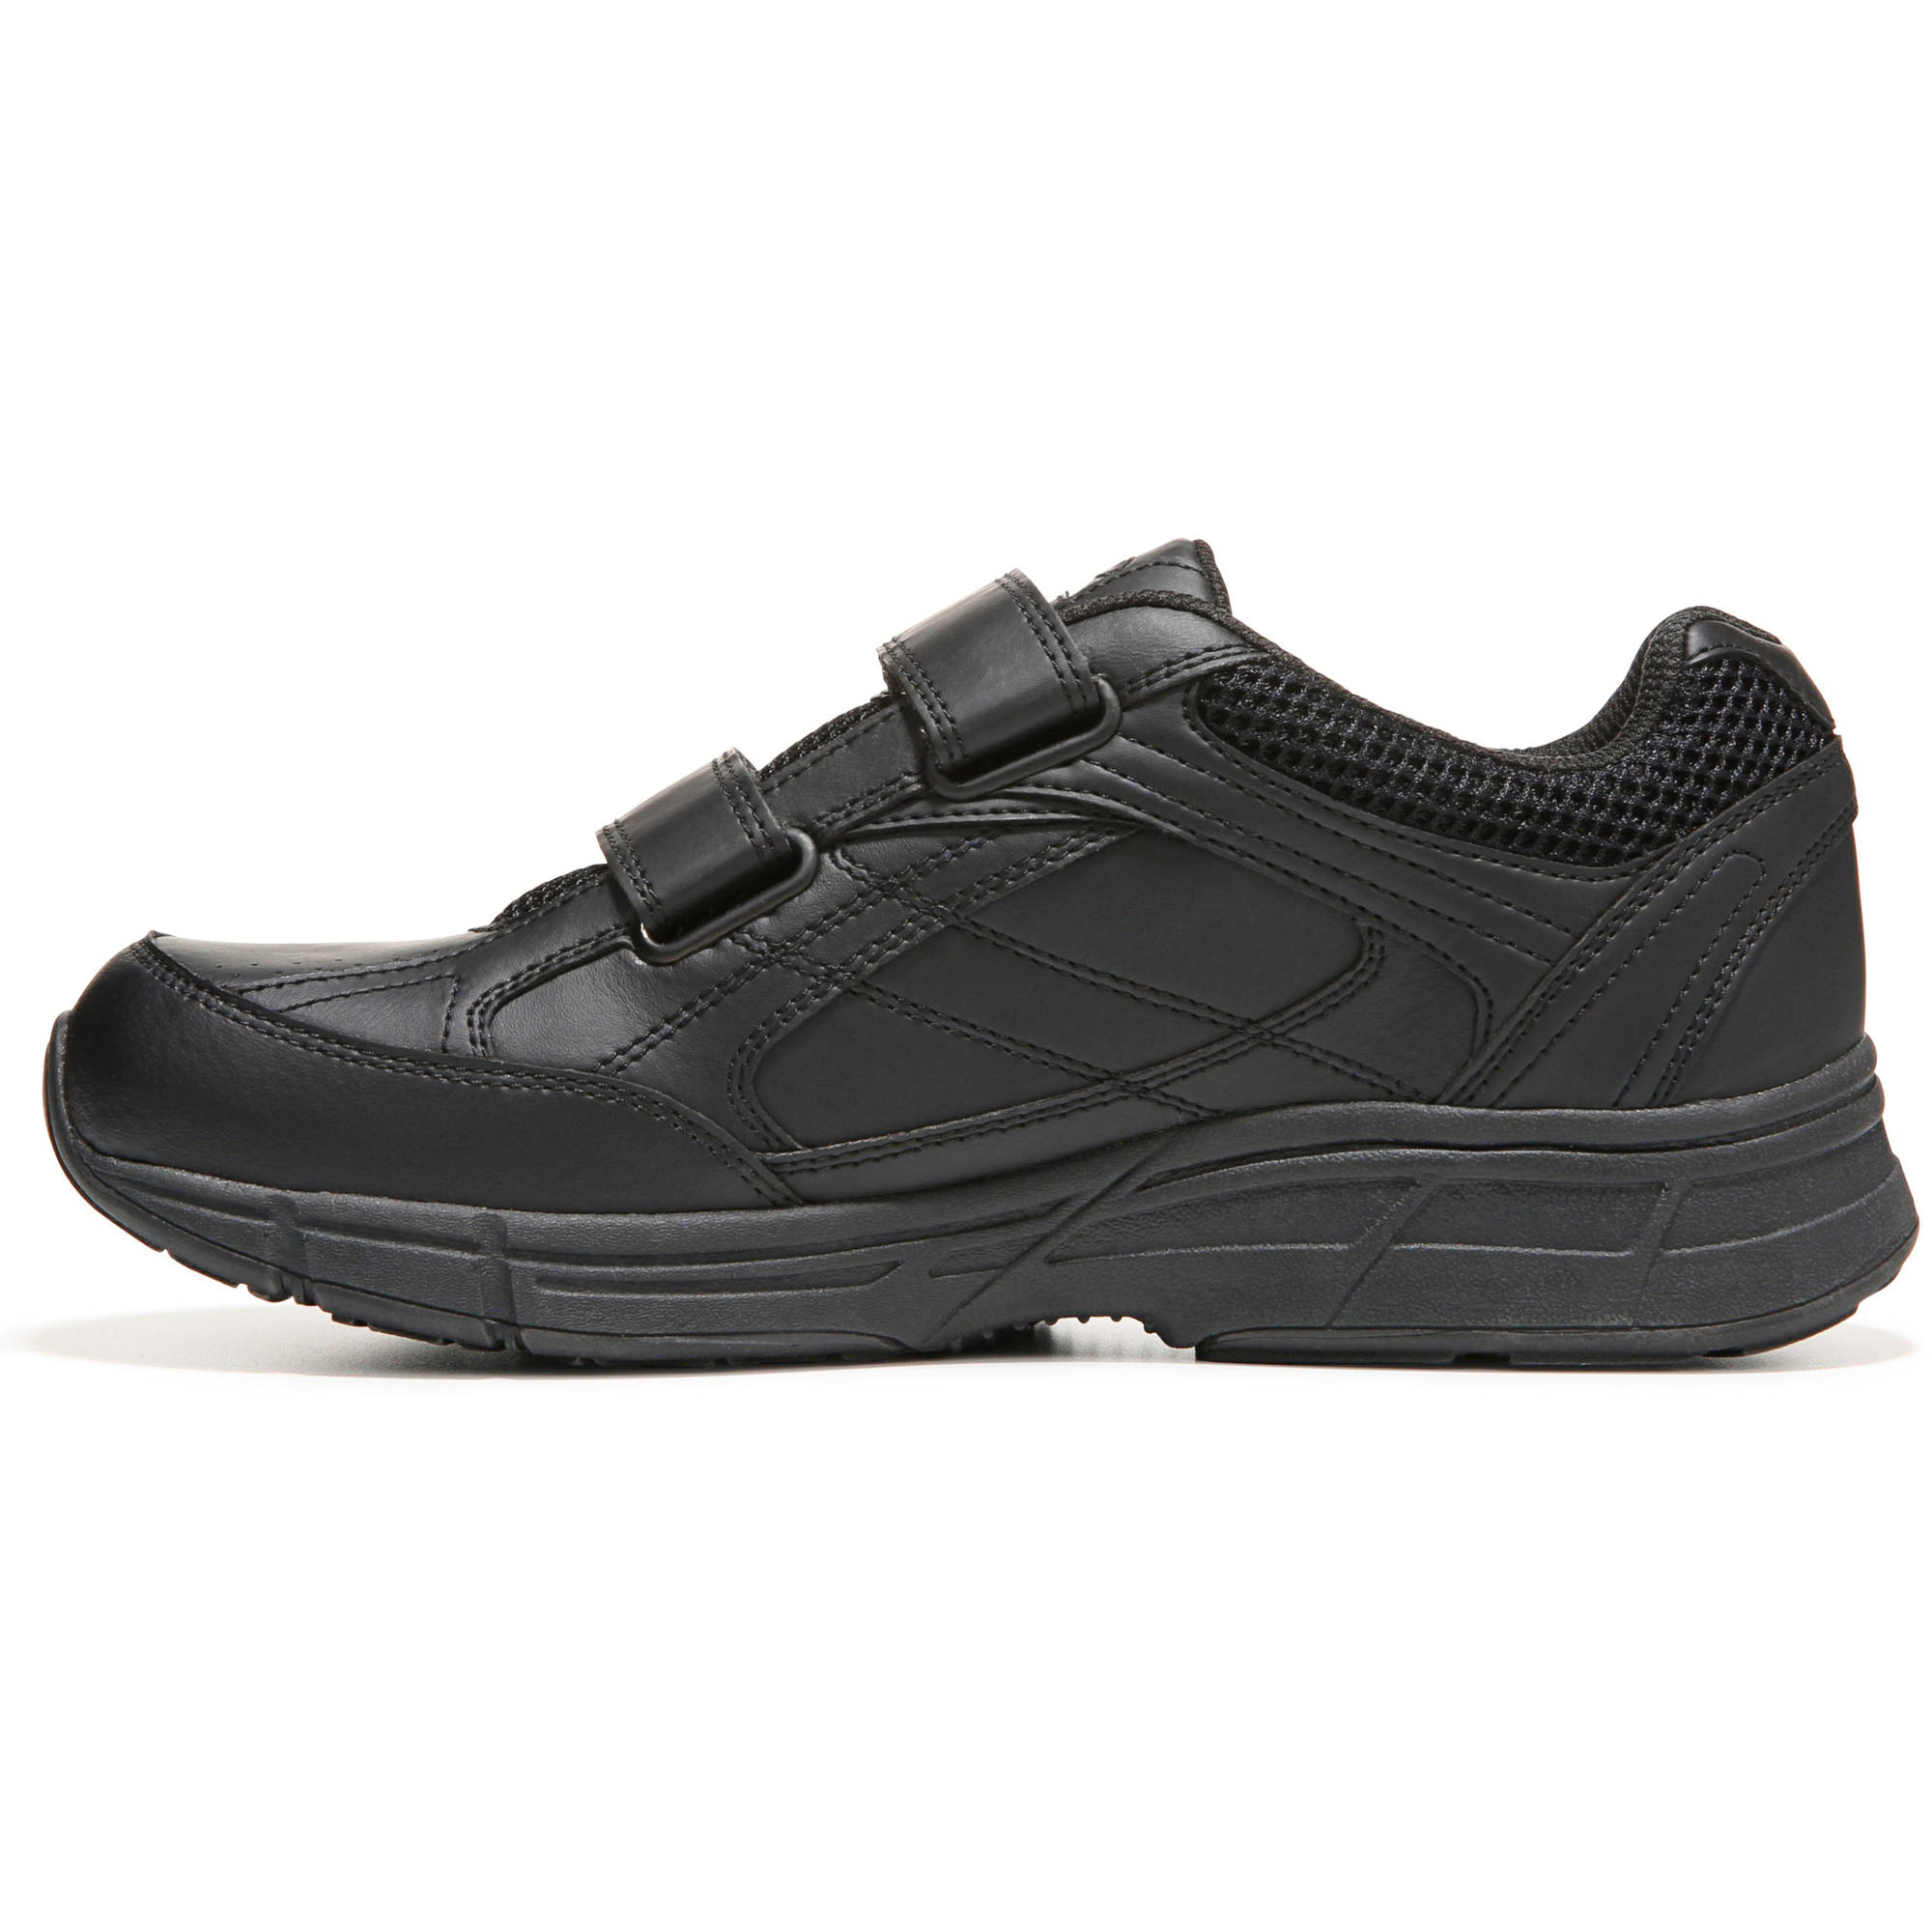 Find dr scholl shoes from a vast selection of Men's Shoes. Get great deals on eBay! Skip to main content. eBay: Shop by category. Shop by category. MENS DR SCHOLL'S BRISK DUAL STRAP CLOSURE WIDE WIDTH WALKING SHOES. Brand new. AU $ 10% GST will apply. Buy It Now +AU $ postage.